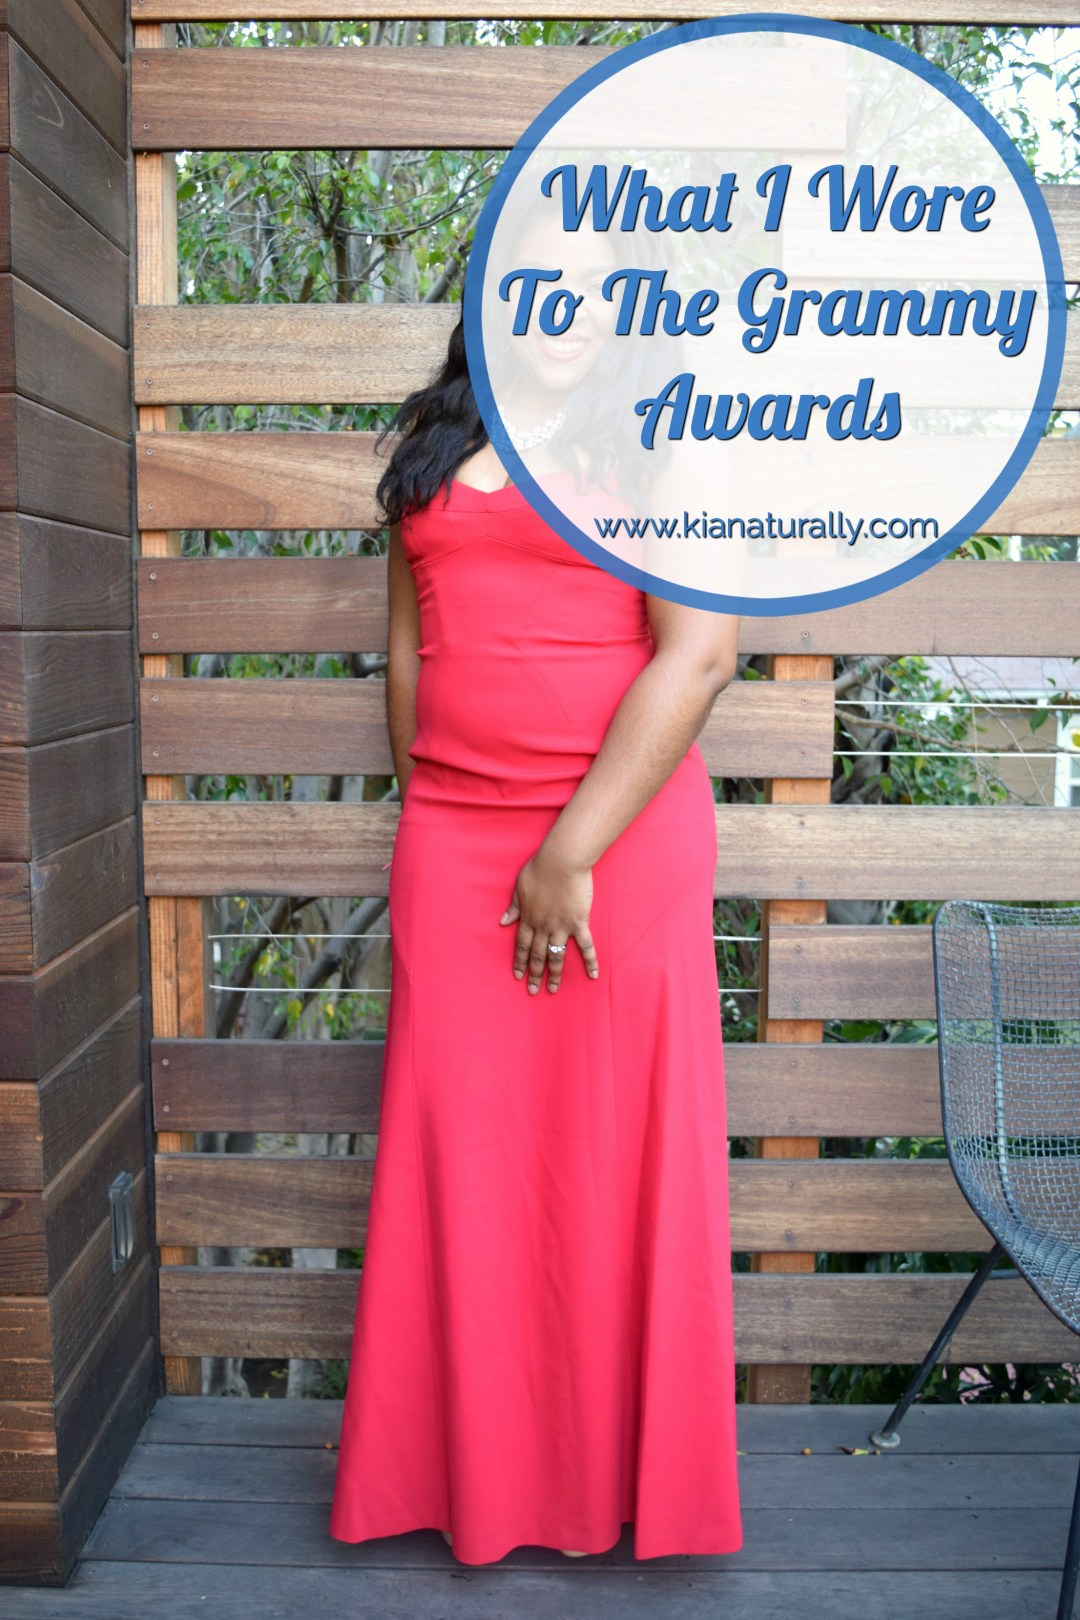 What I Wore To The Grammy Awards - www.kianaturally.com